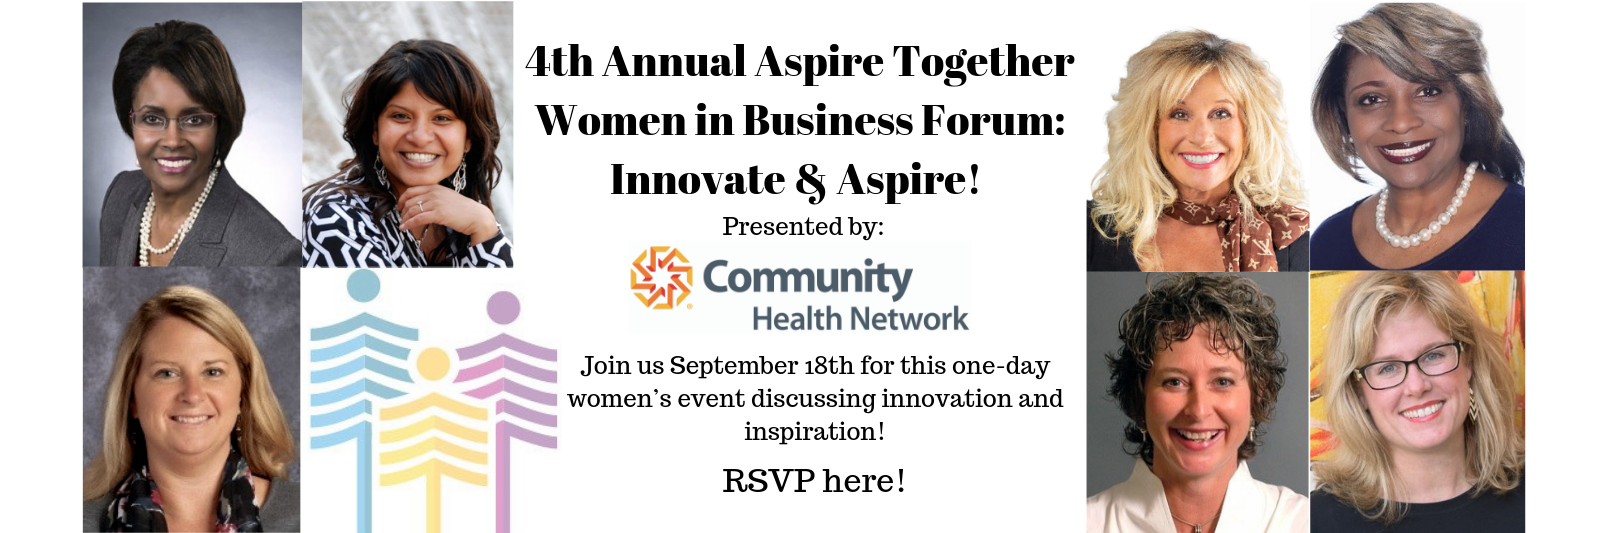 2019-Aspire-Together_-Innovate-and-Aspire.(1).png